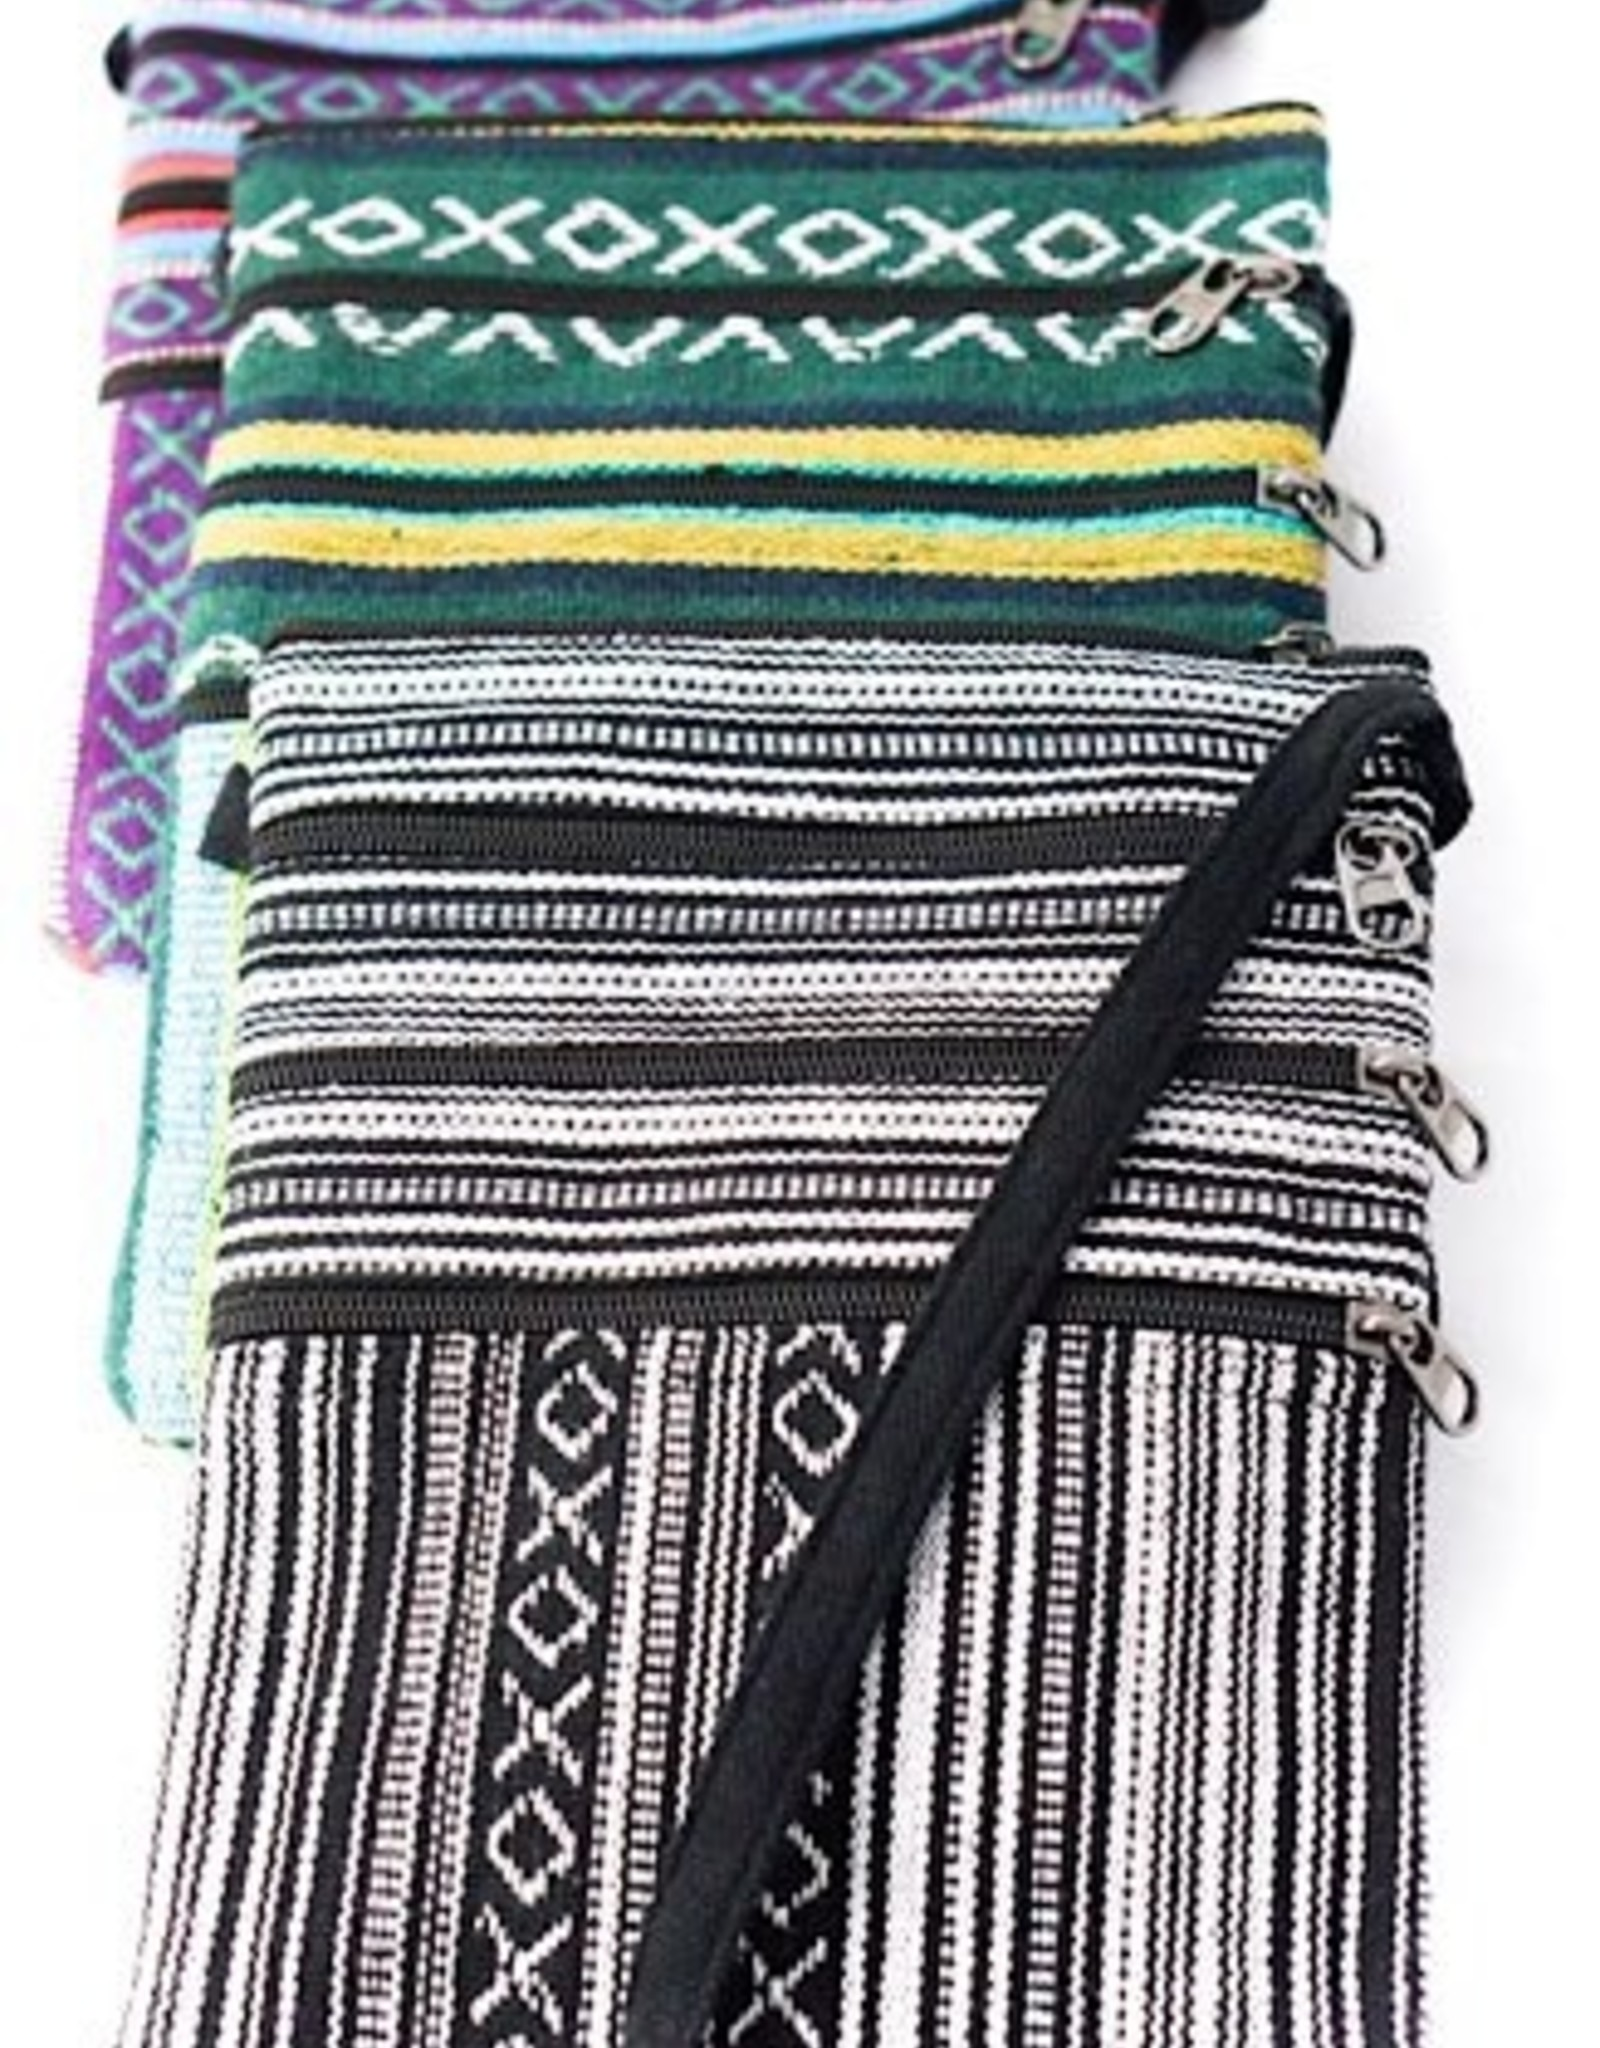 Nepal, Gyari cotton passport bag